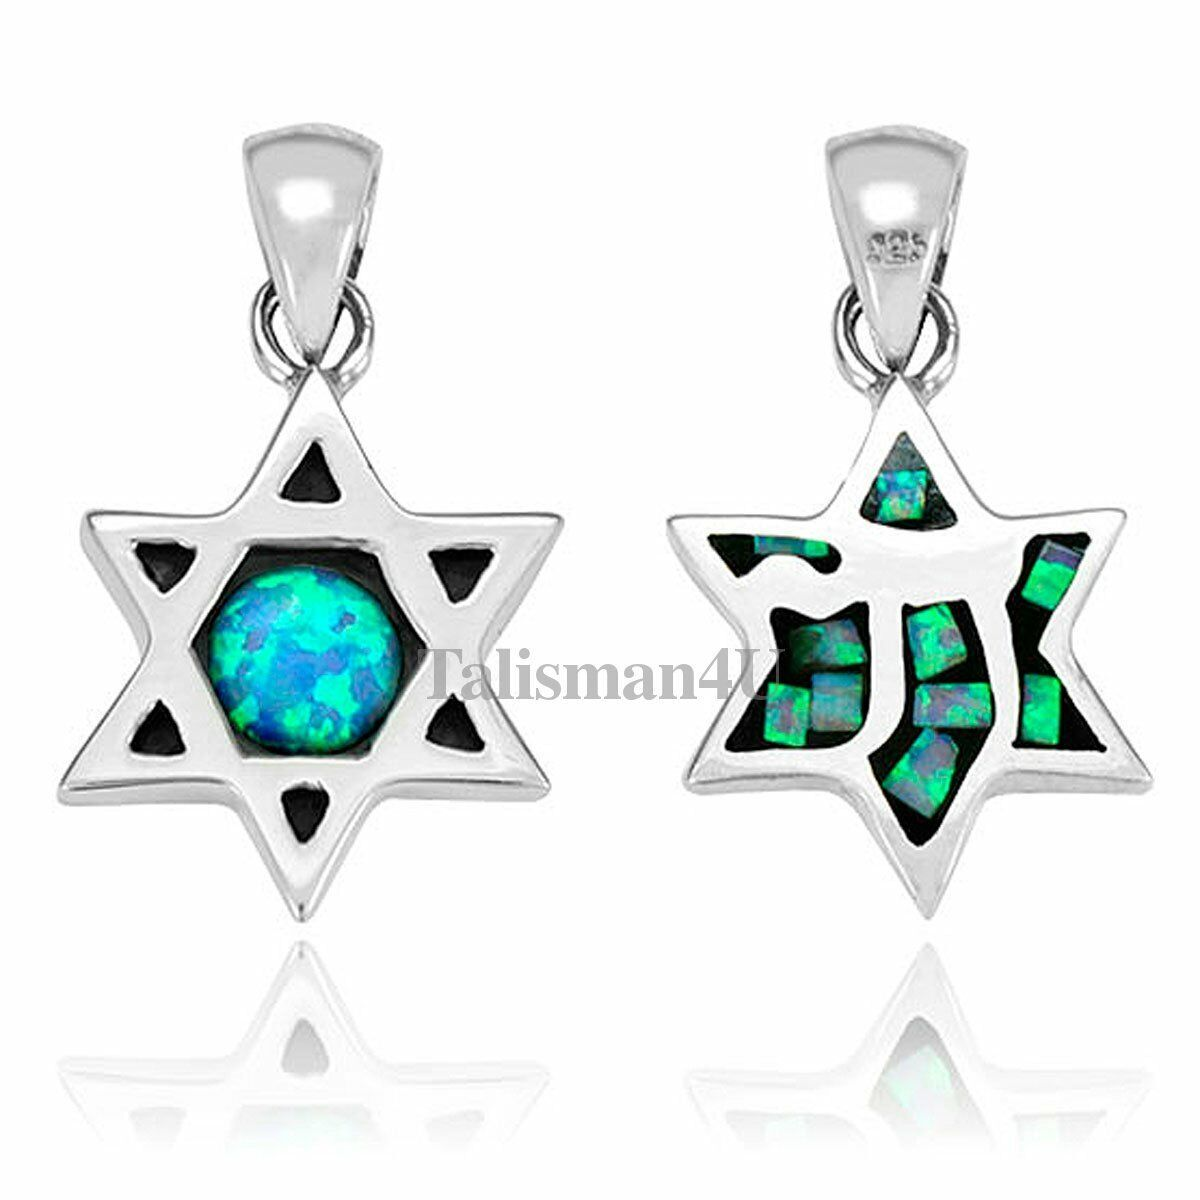 Primary image for Blue Opal STAR OF DAVID Chai Two-Sided Design Sterling Silver KABBALAH PENDANT